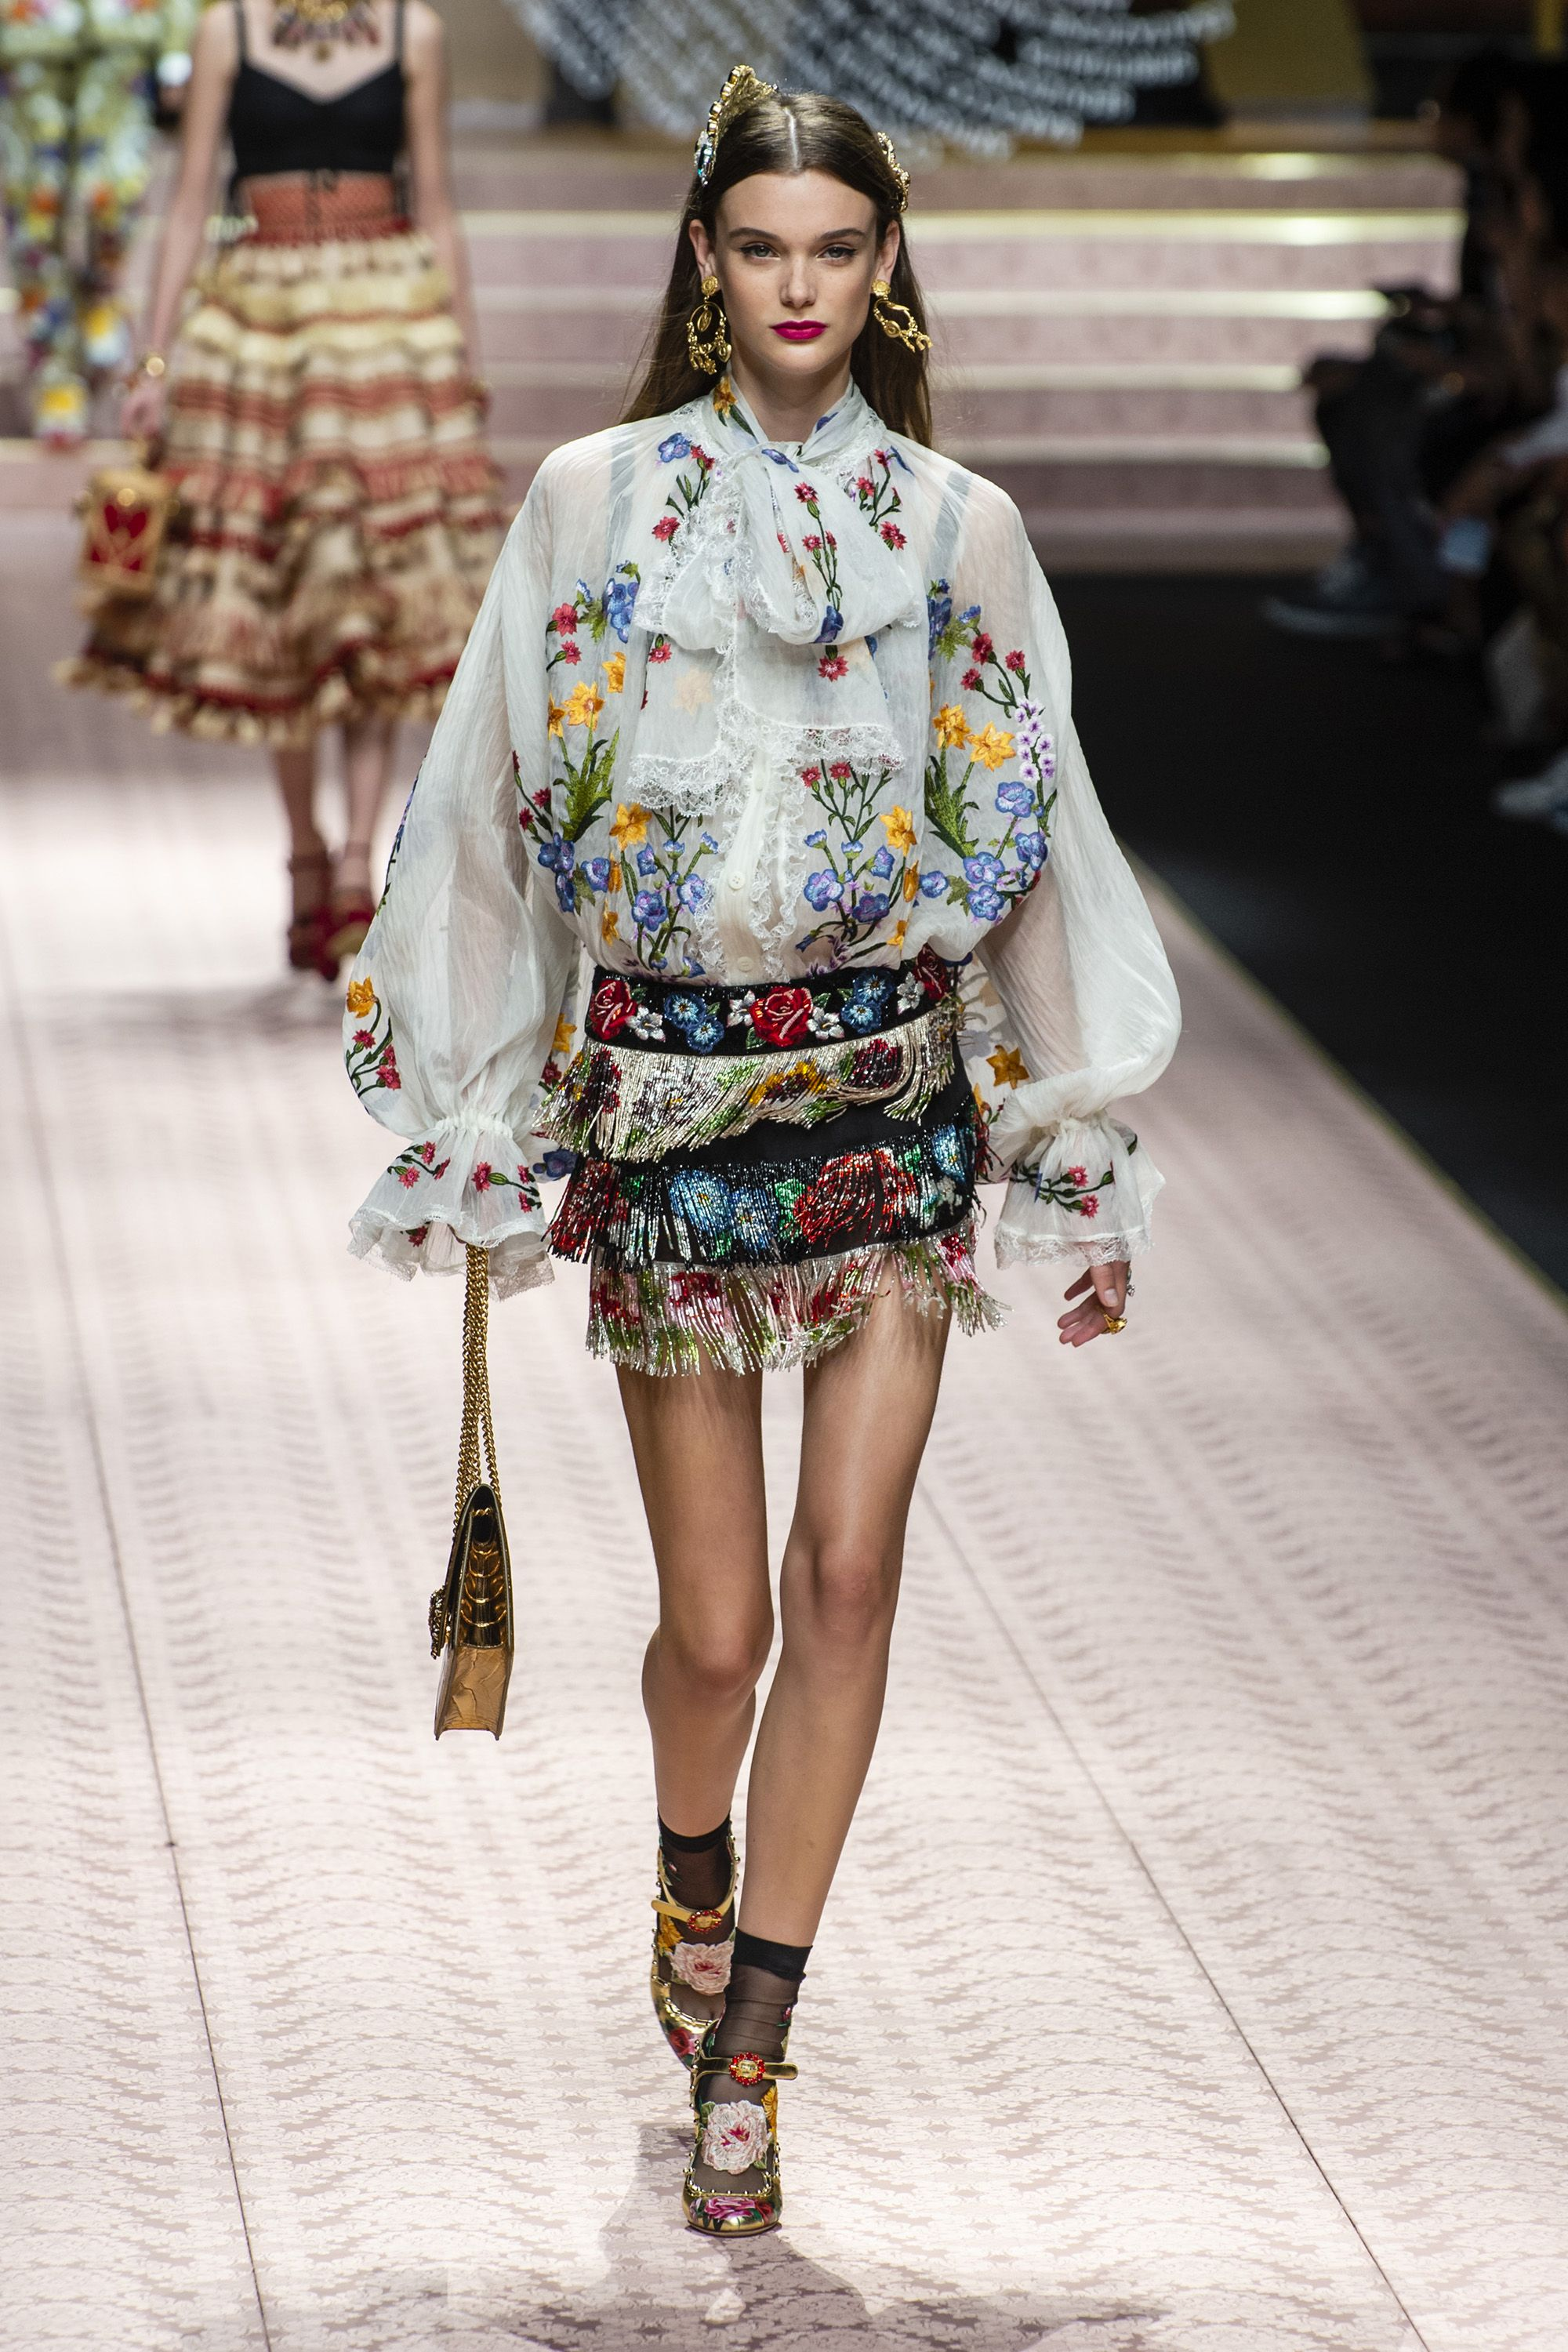 e2edf5770d0 Milan Fashion Week Runway Spring 2019 - Spring 2019 Trends Milan Fashion  Week